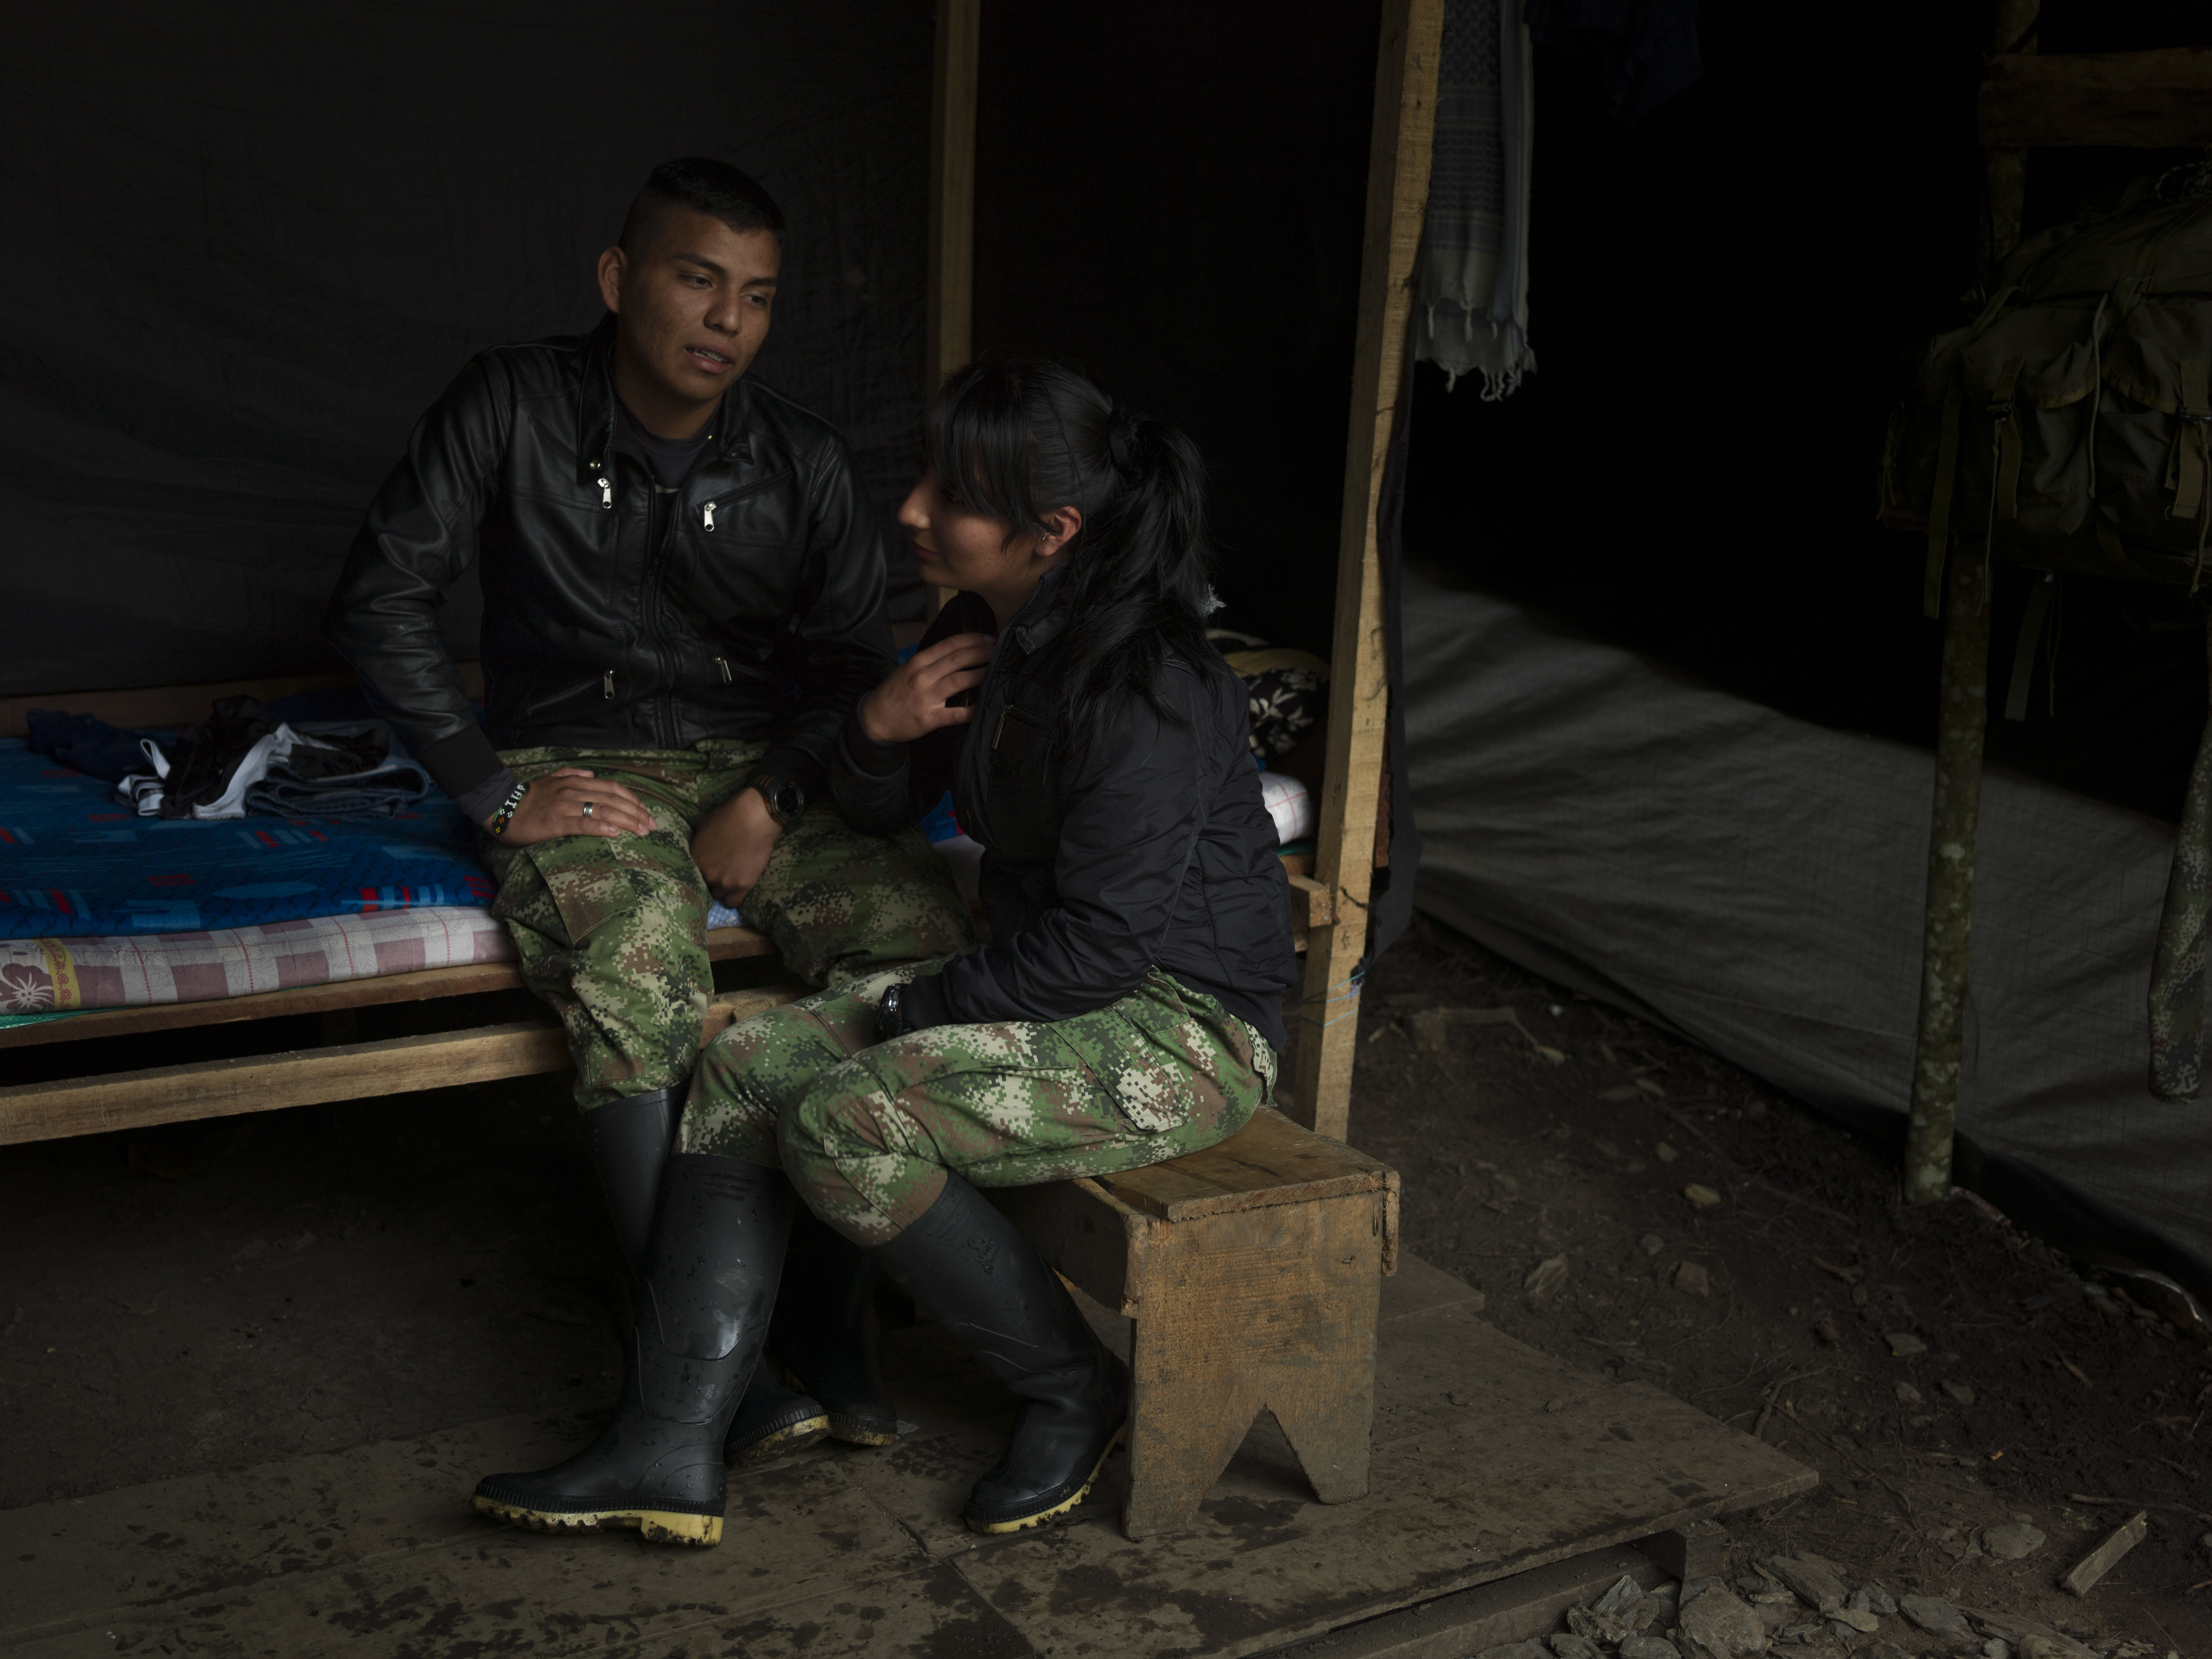 COLOMBIA. 2017. A guerrilla couple in a tent.